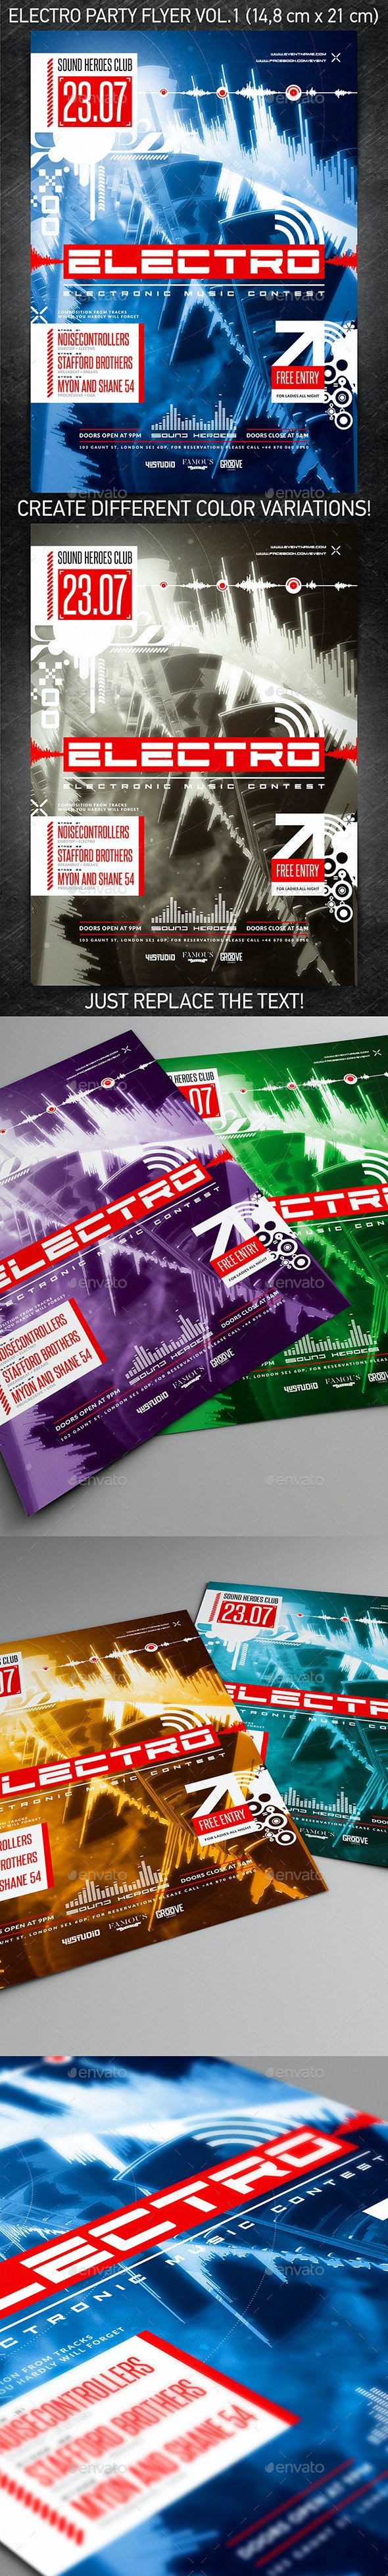 Electro Party Flyer vol.1 - Events Flyers